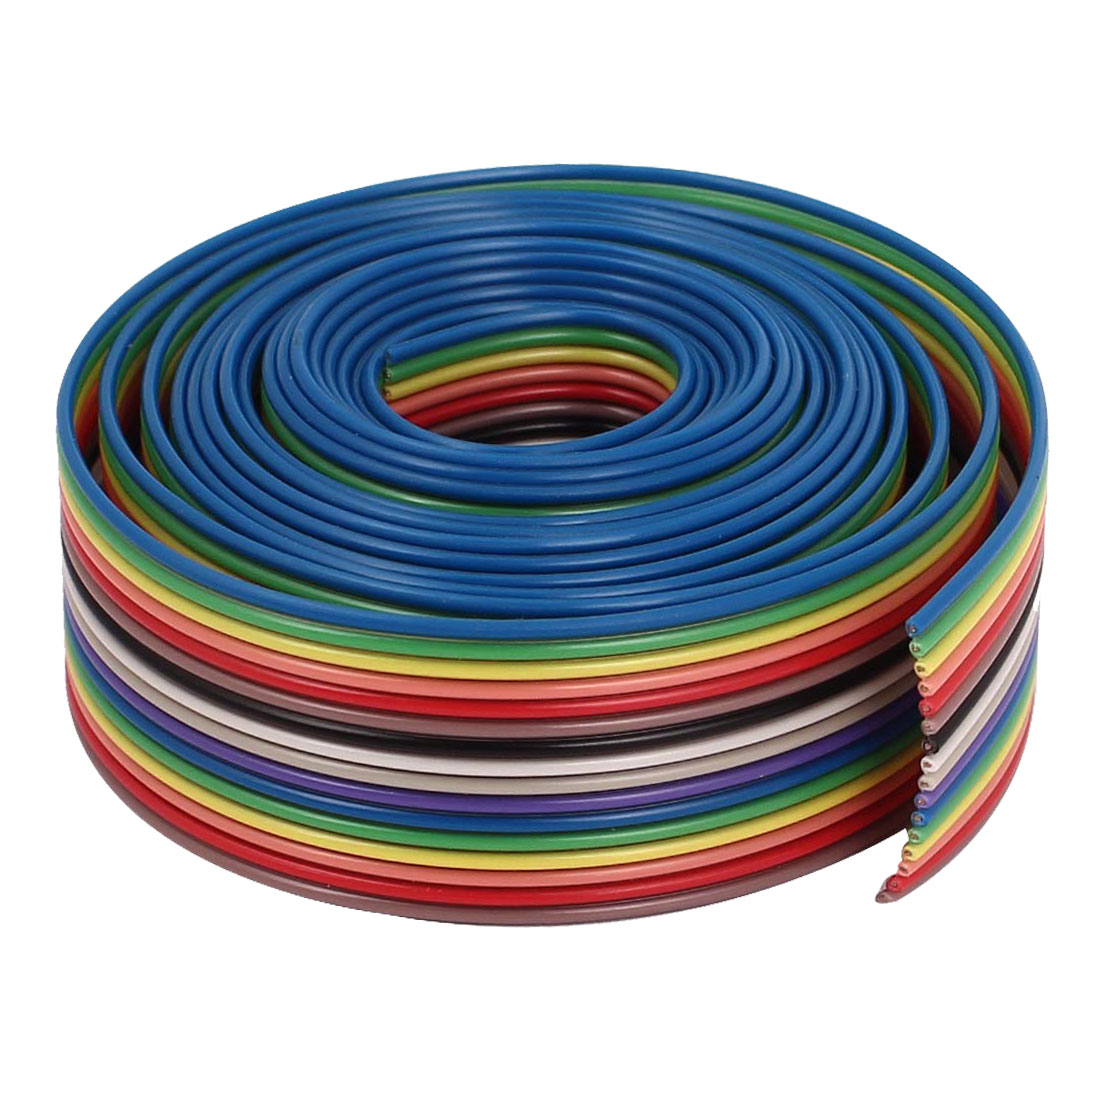 1.7M 1.27mm Pitch 16 Pin Flat Rainbow Color IDC Ribbon Extension Cable Wire